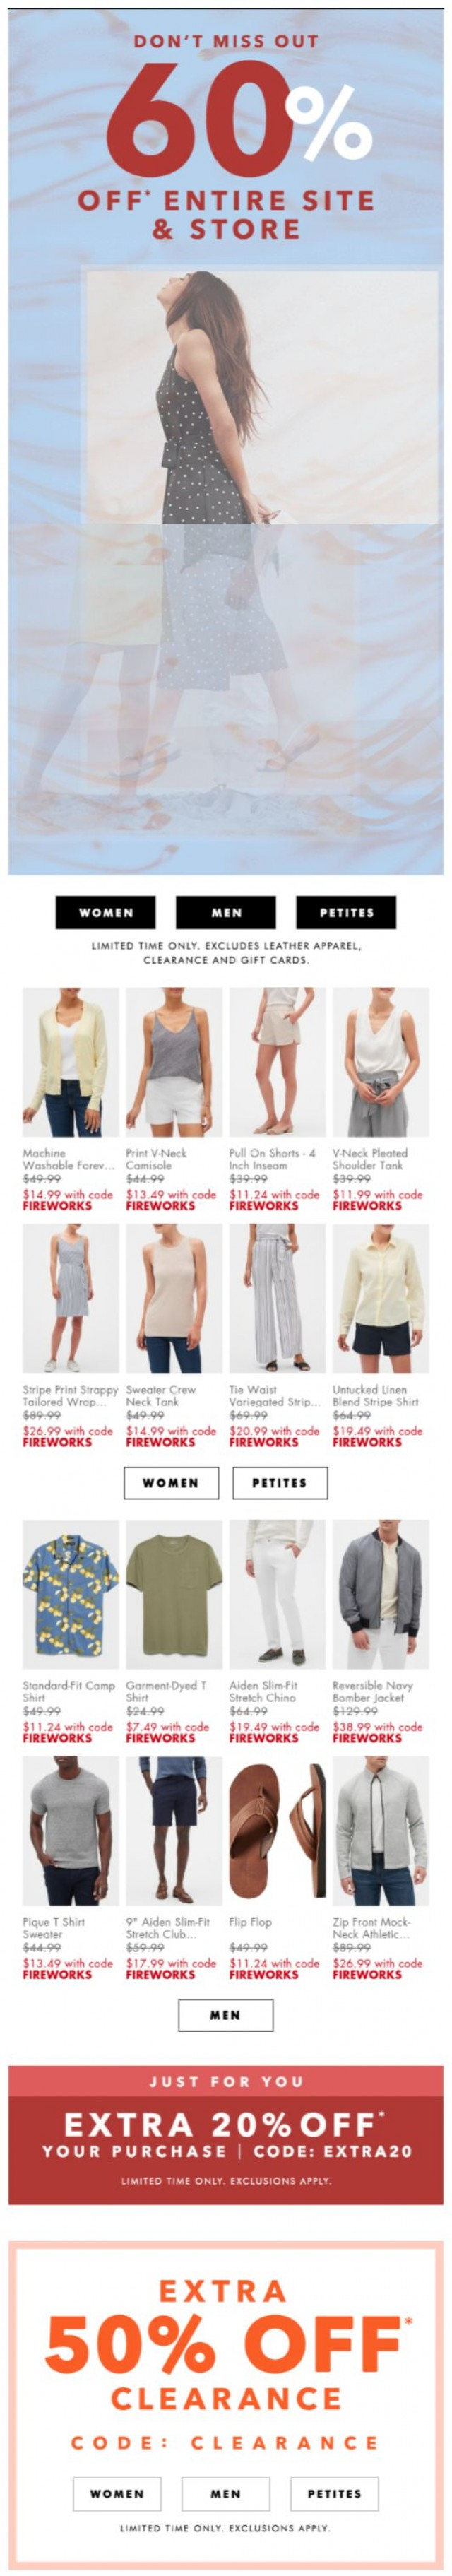 Coupon for: Banana Republic Factory - 72 HOURS LEFT: 60% off NEW ARRIVALS + extra 20% off